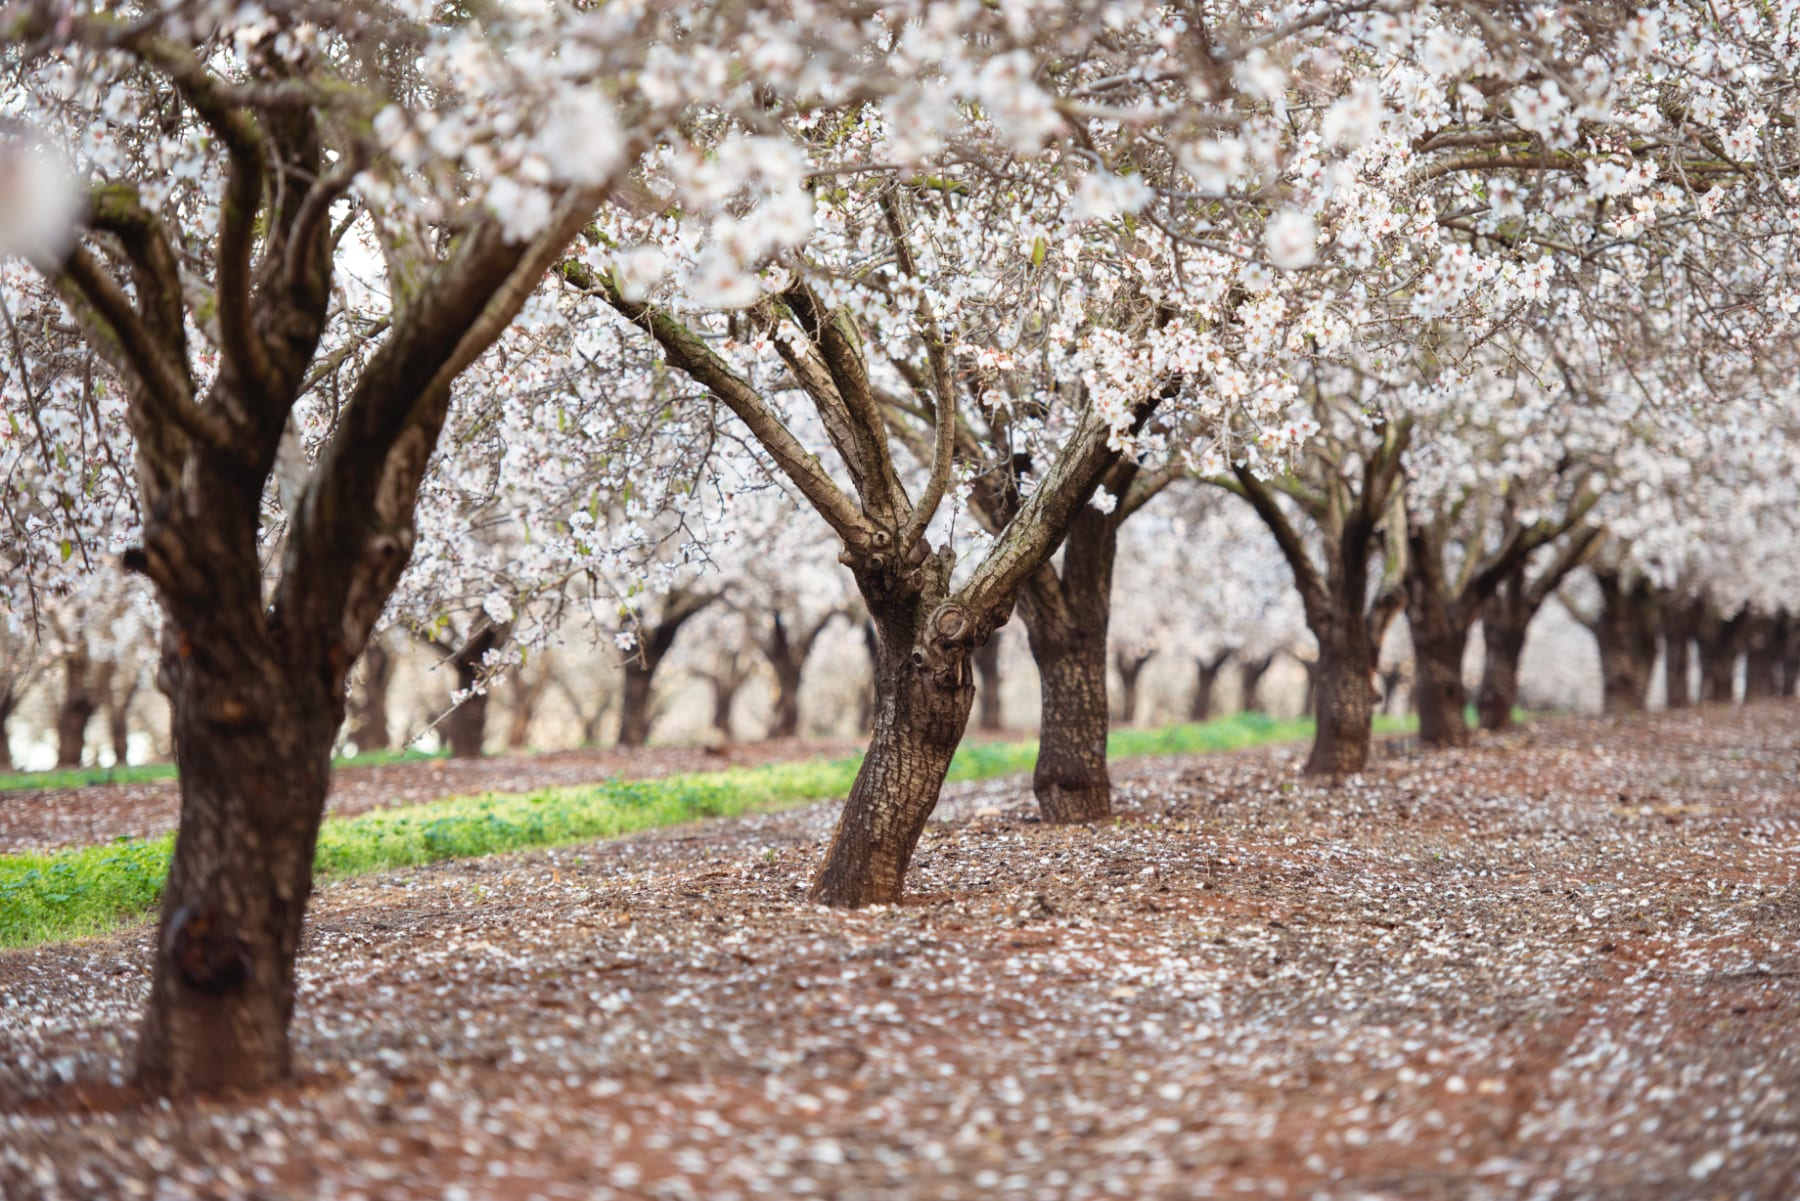 griffith flowers from local almond tree farm